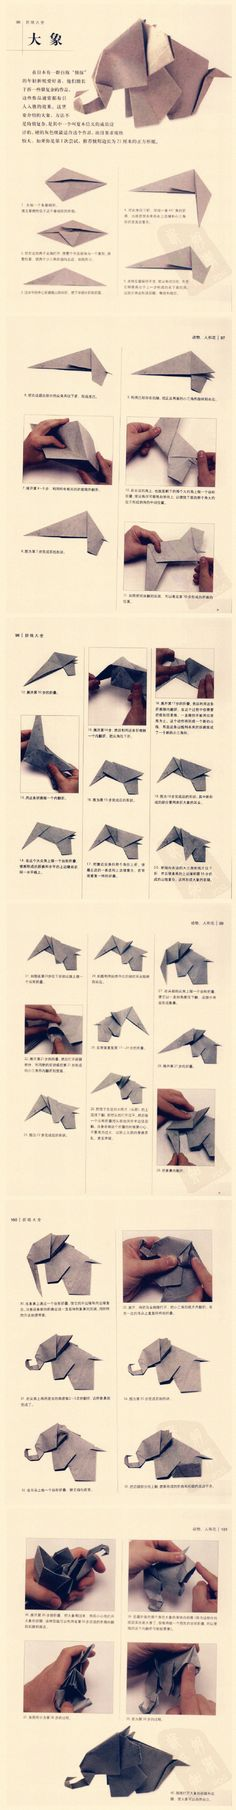 Money origami elephant instructions